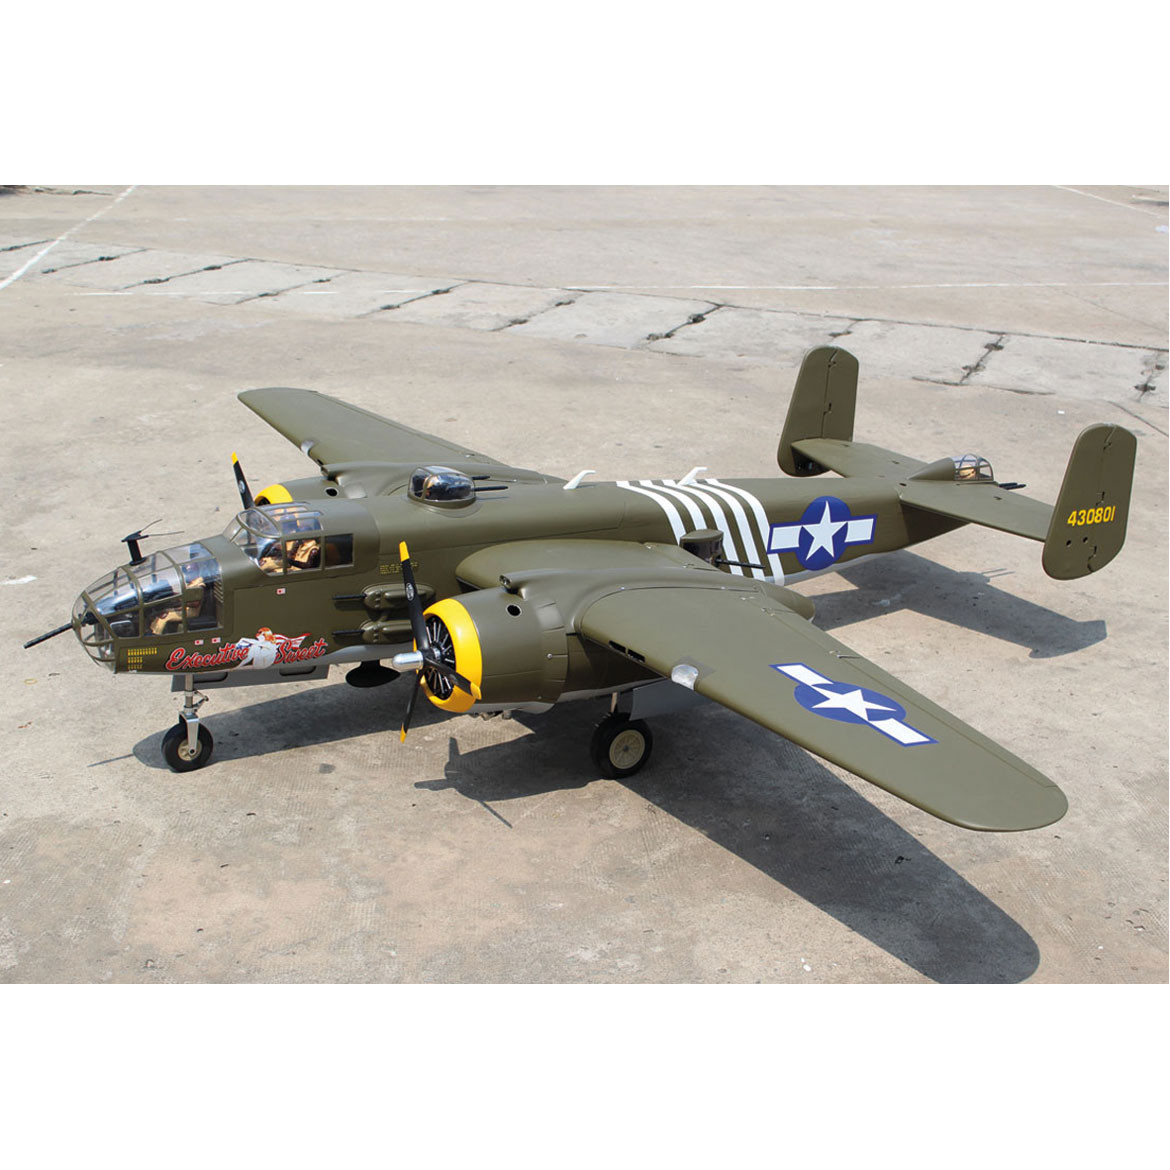 SG-MODELS B-25 MITCHELL GIANT SCALE ARF 2,4M